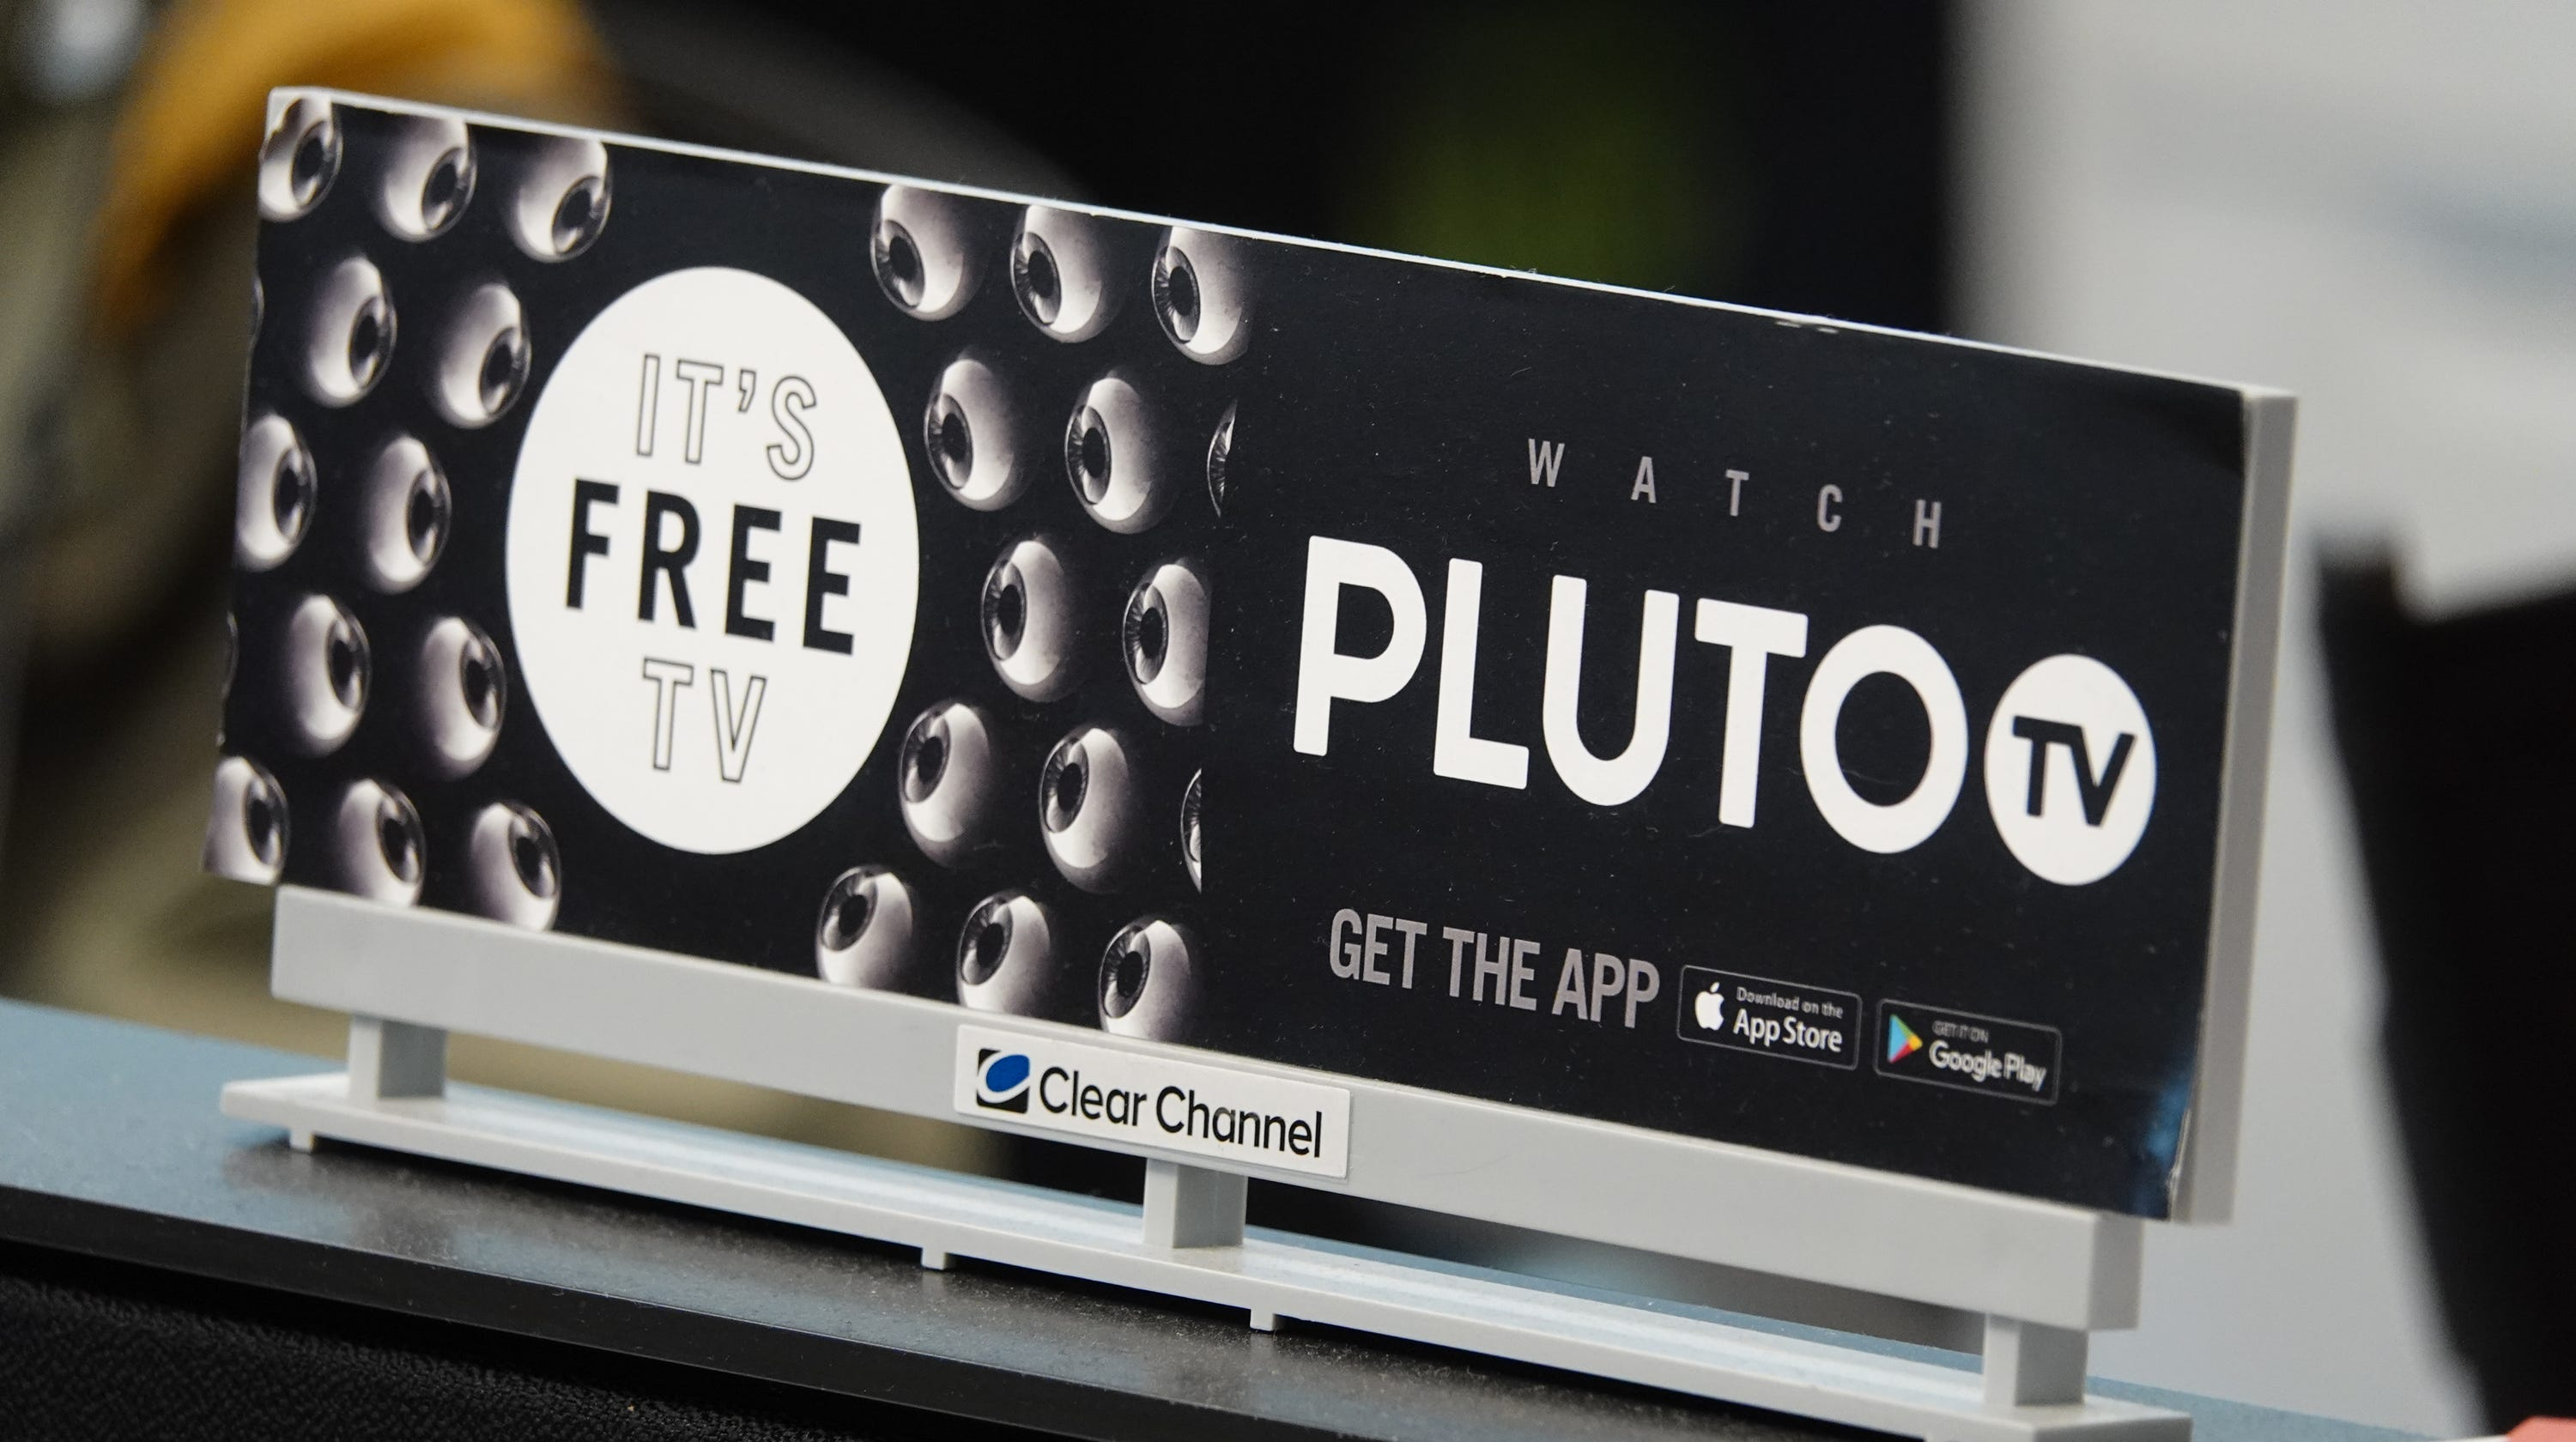 Free TV Pluto, Roku, Crackle, Xumo, Tubi as Netflix, Hulu